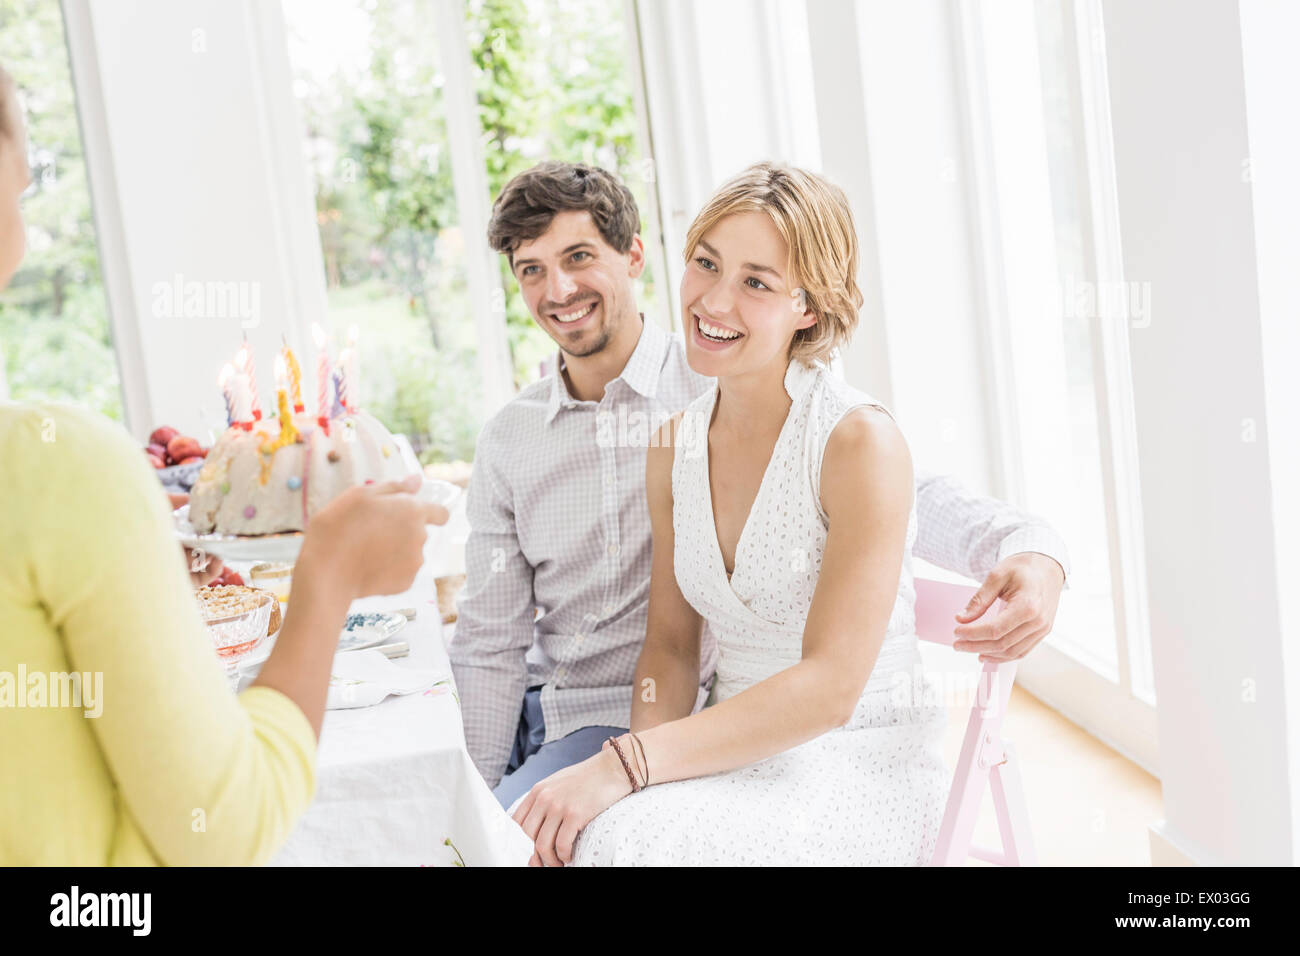 Girl handing birthday cake to parents at birthday party - Stock Image